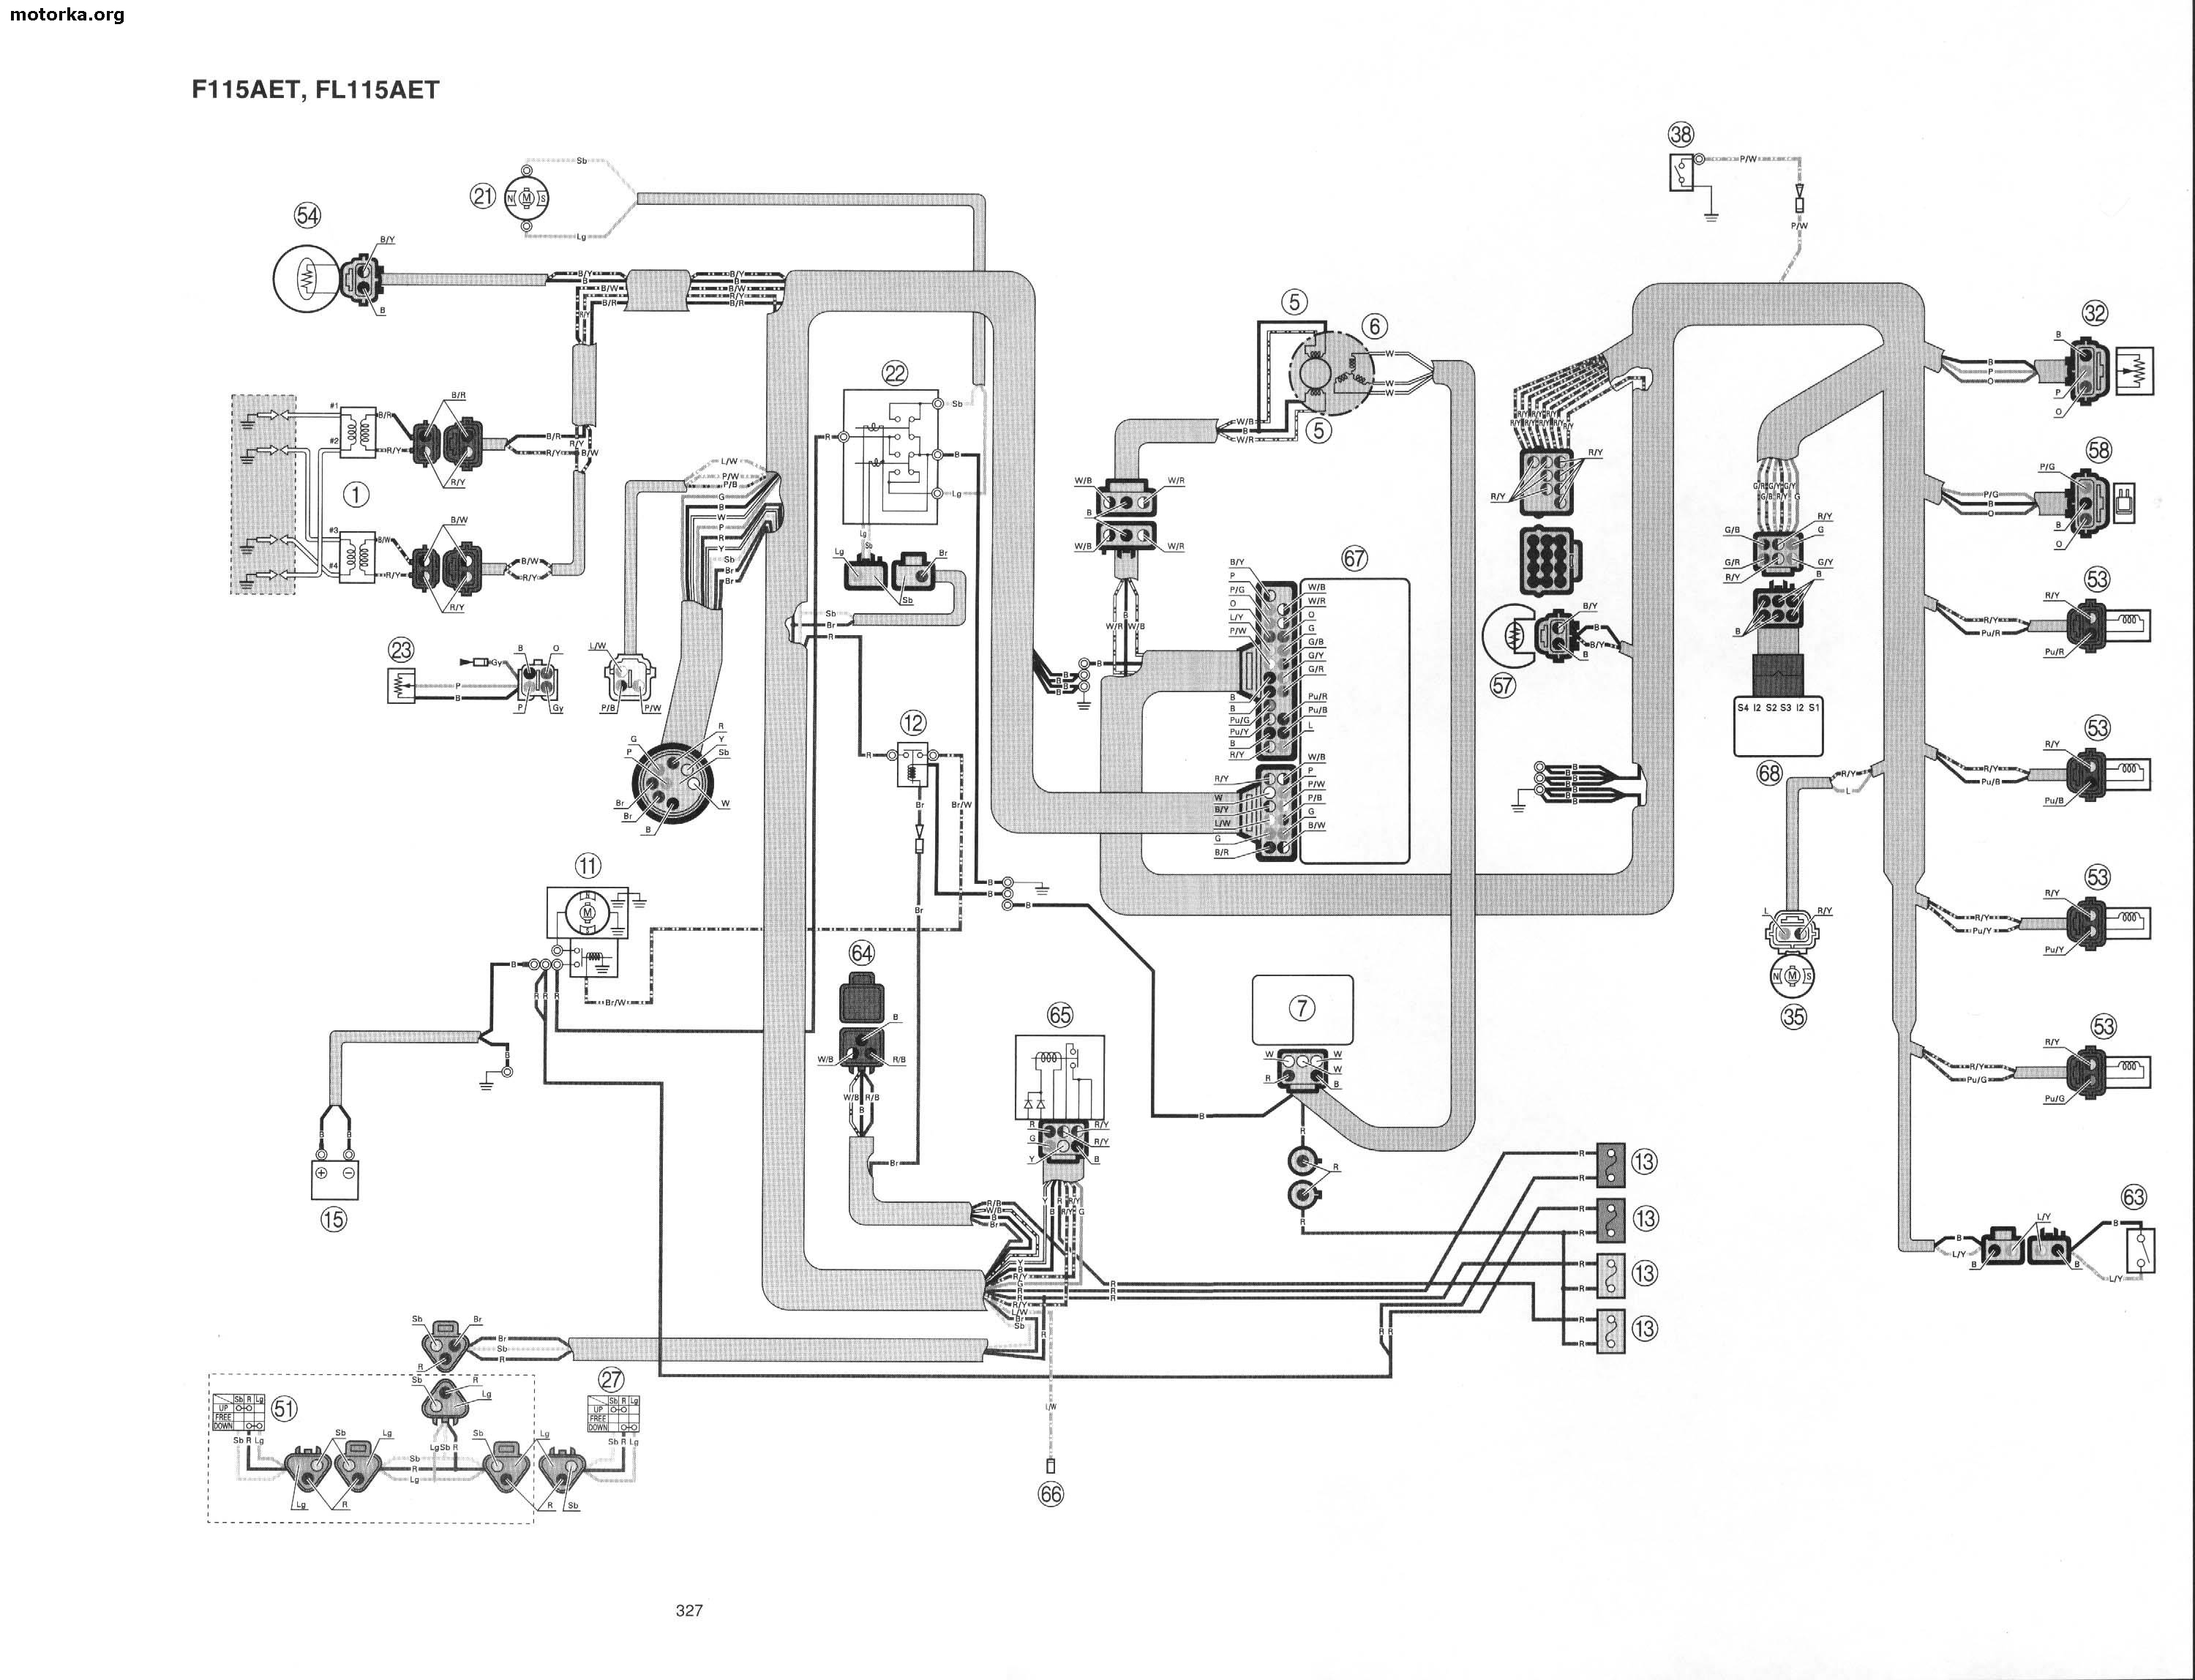 yamaha f200 outboard wiring diagram yamaha f200 cover